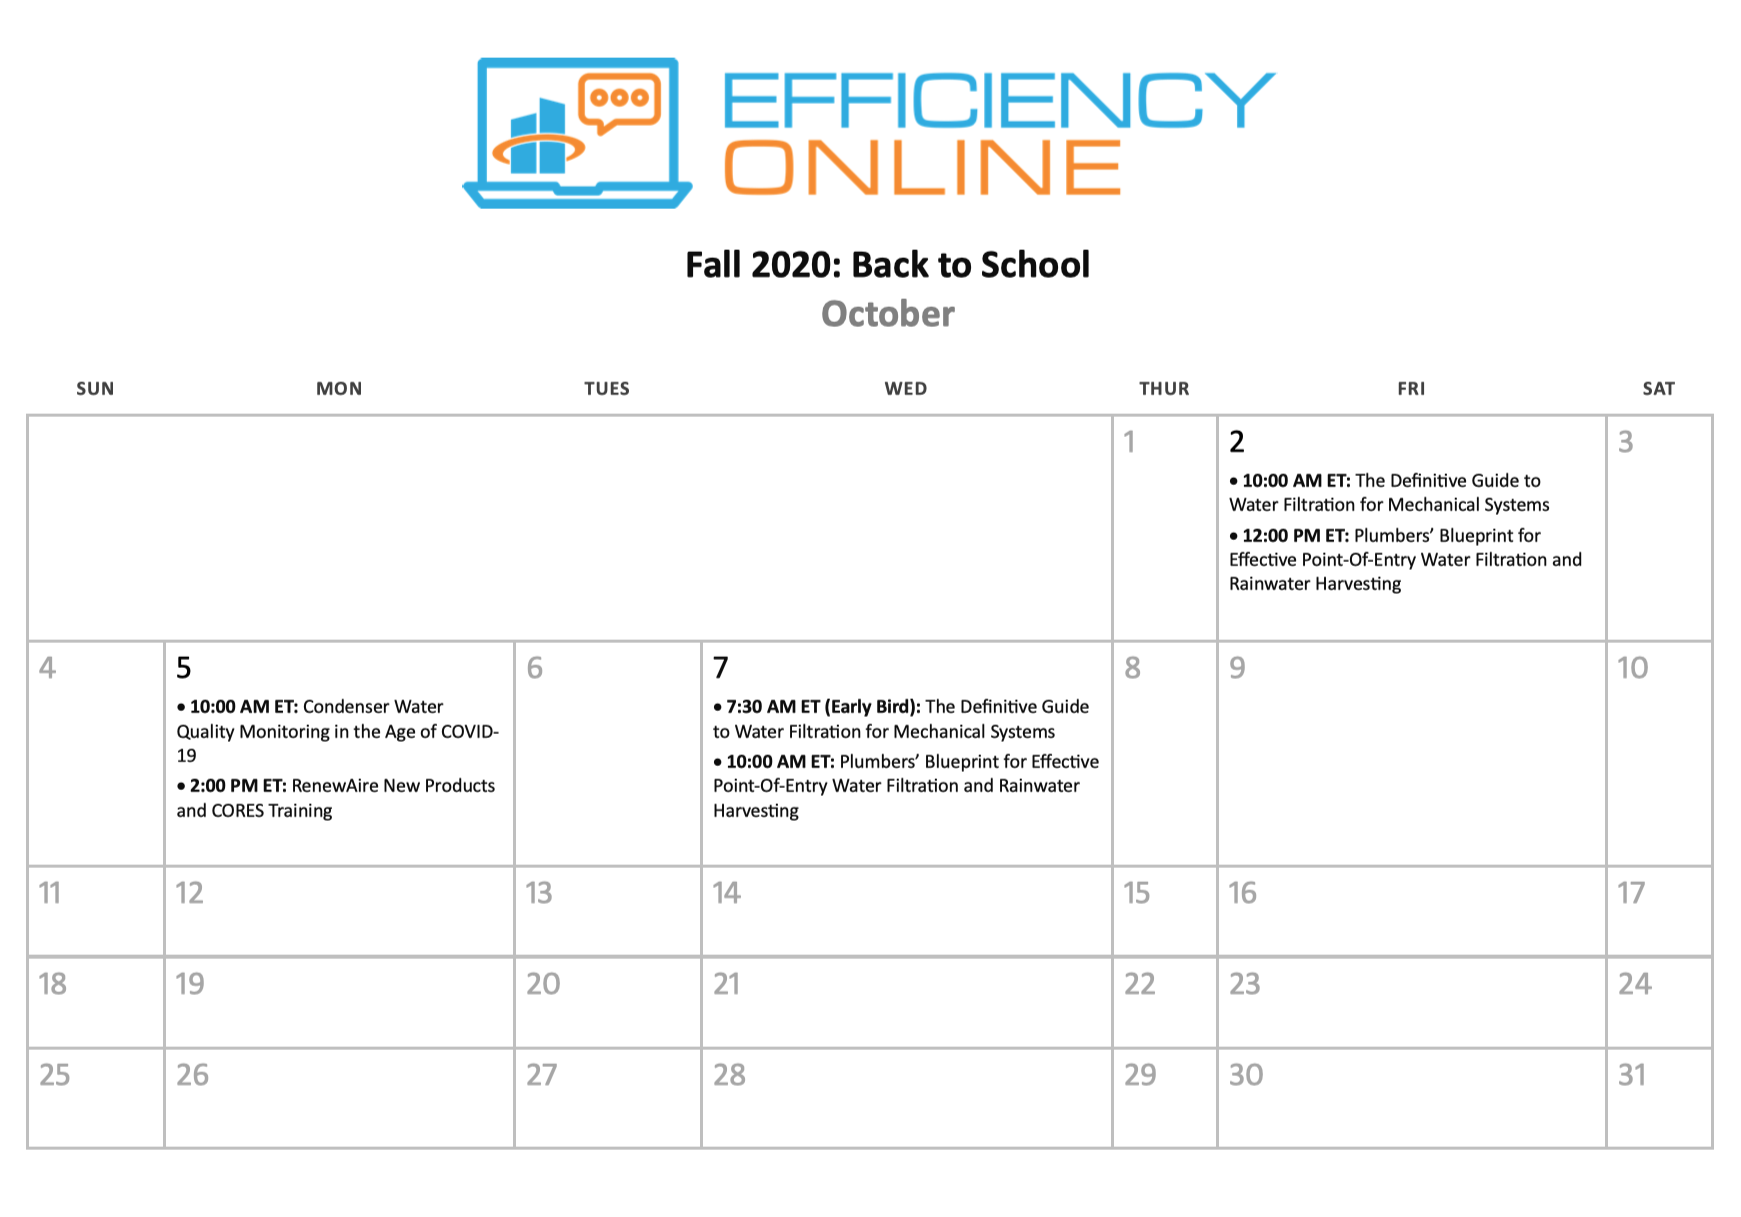 Back to School Calendar Oct 2020